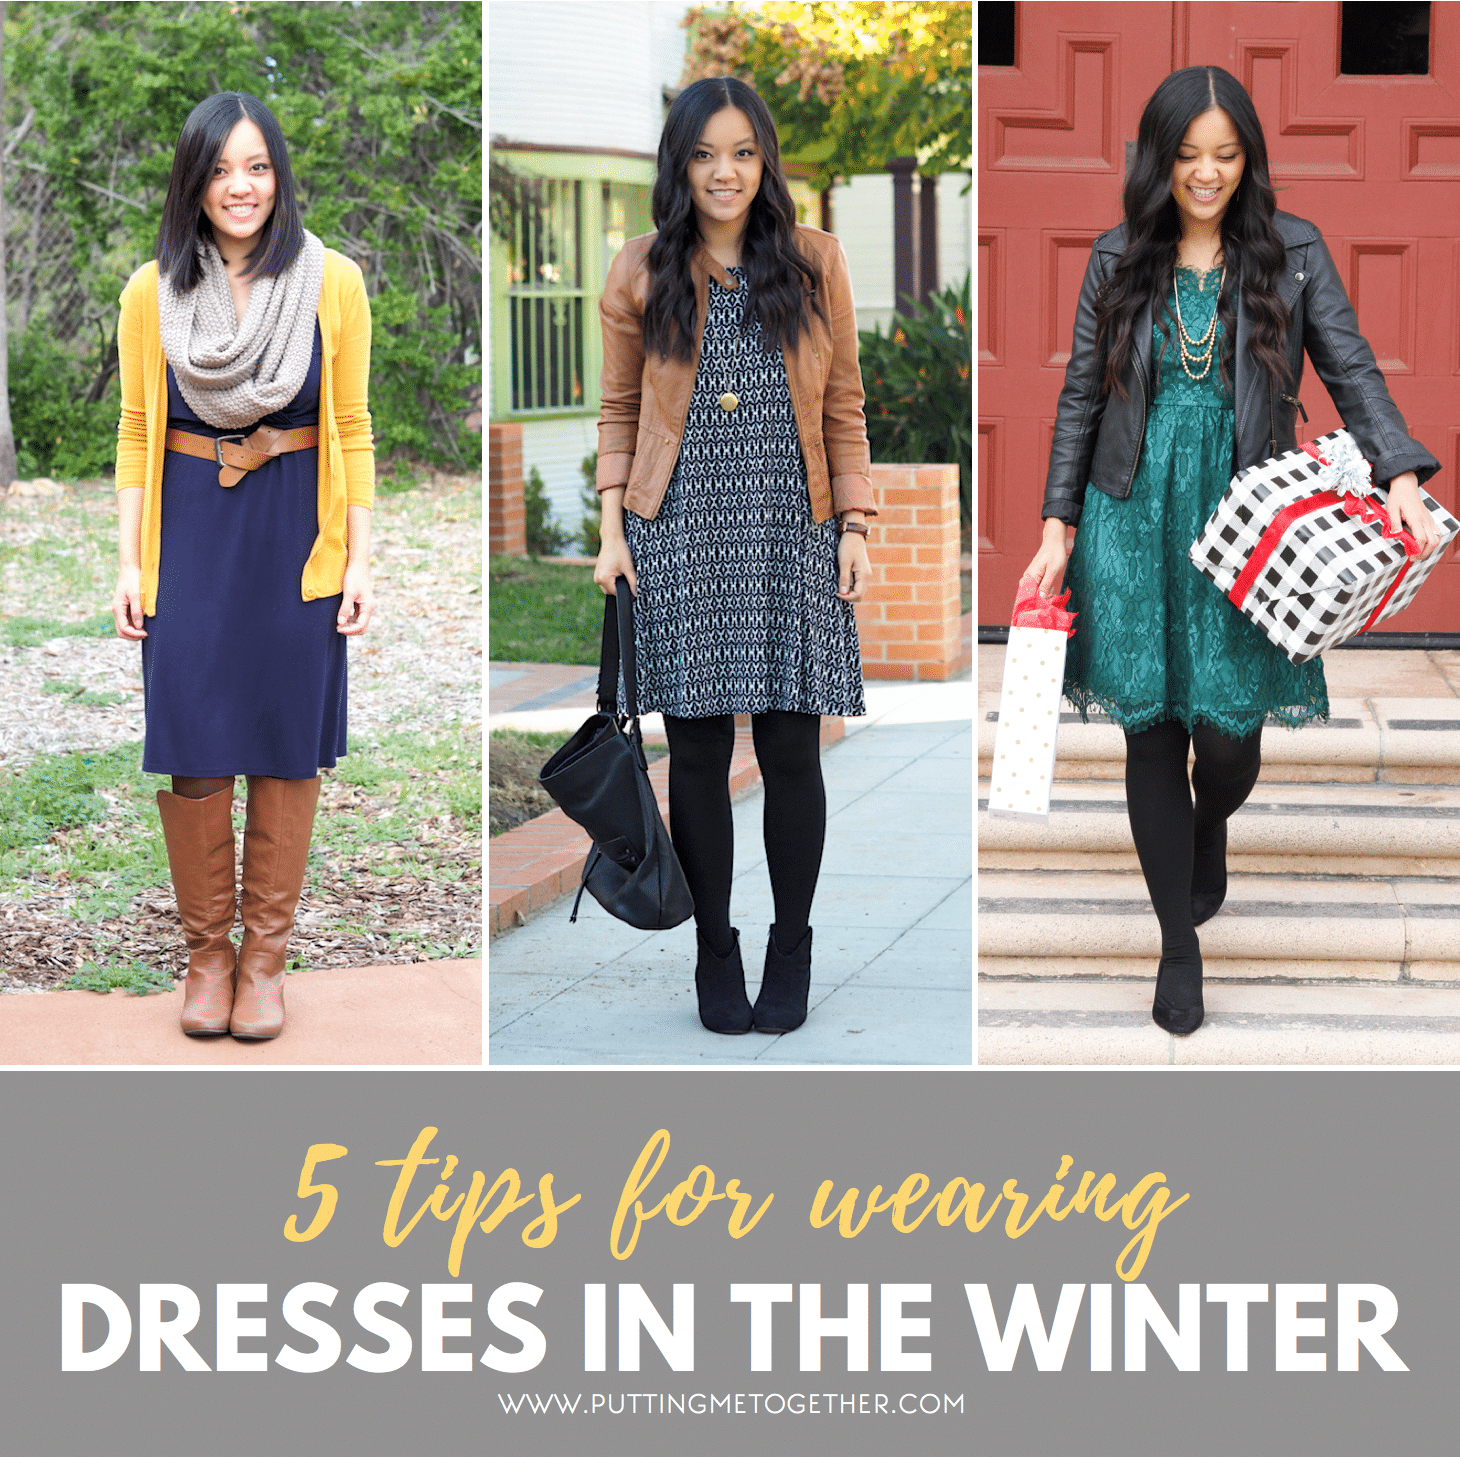 Cold Weather Style Help Resources for Winter Outfits